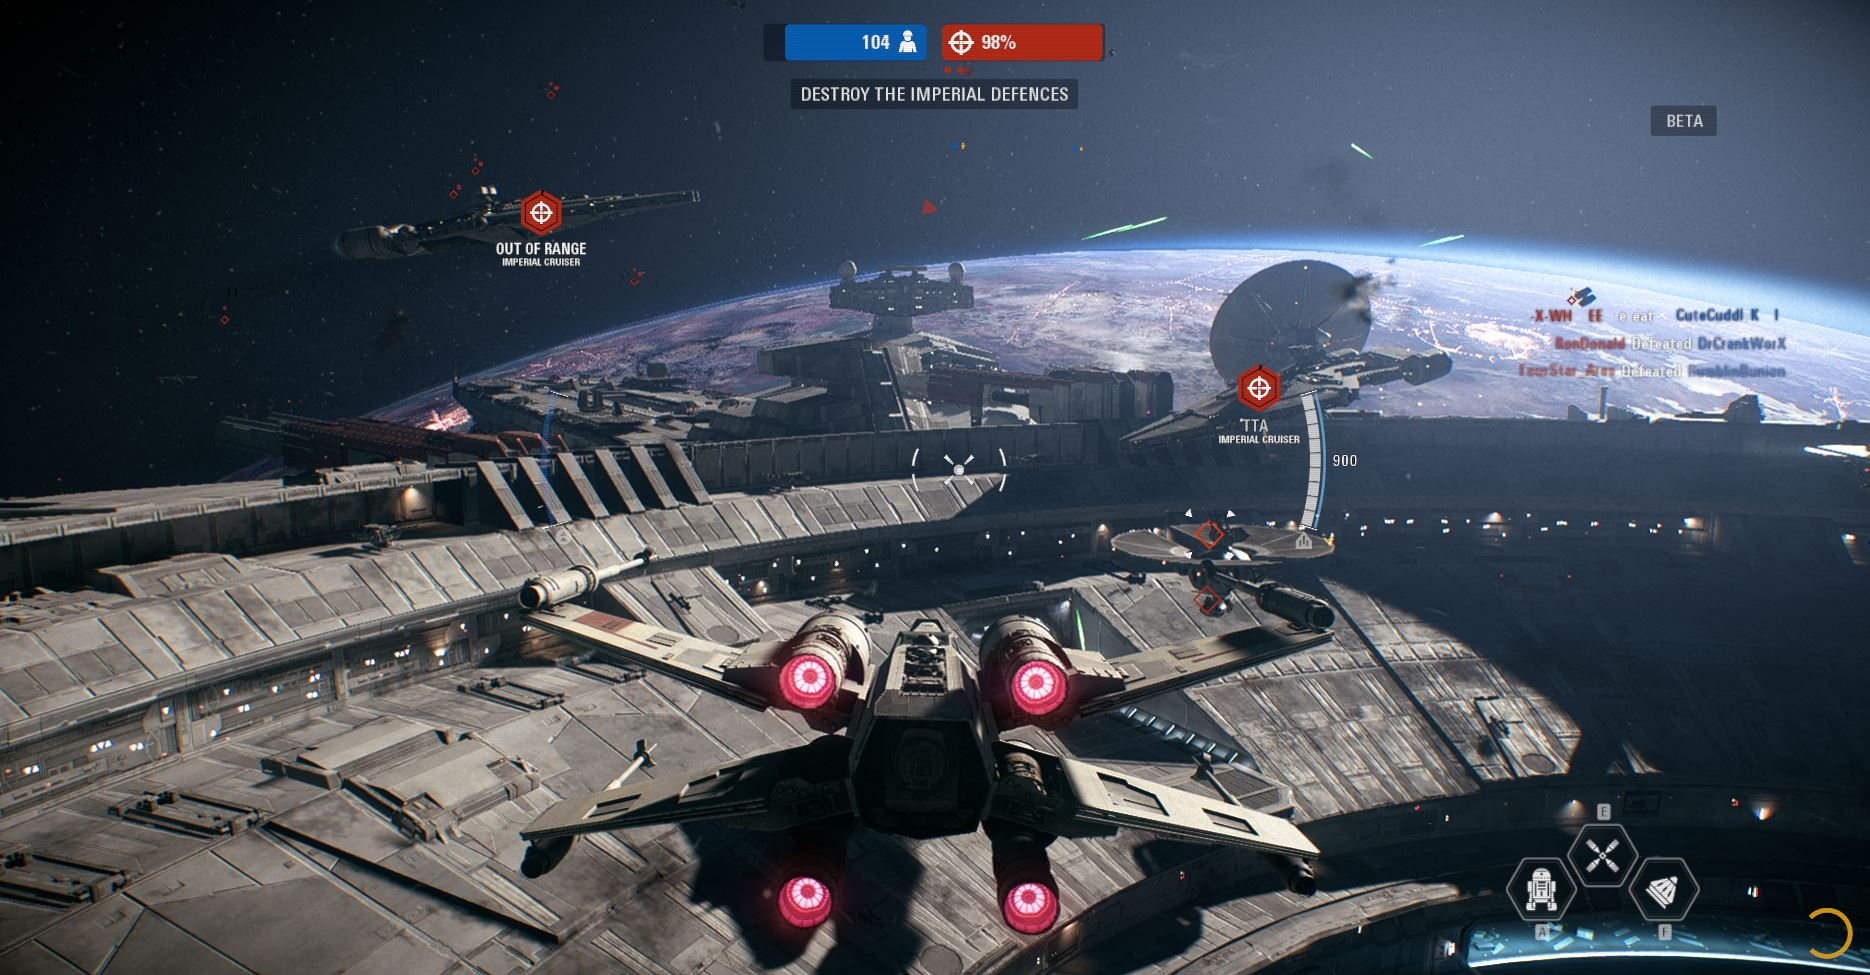 star wars battlefront 2 beta bataille spatiale